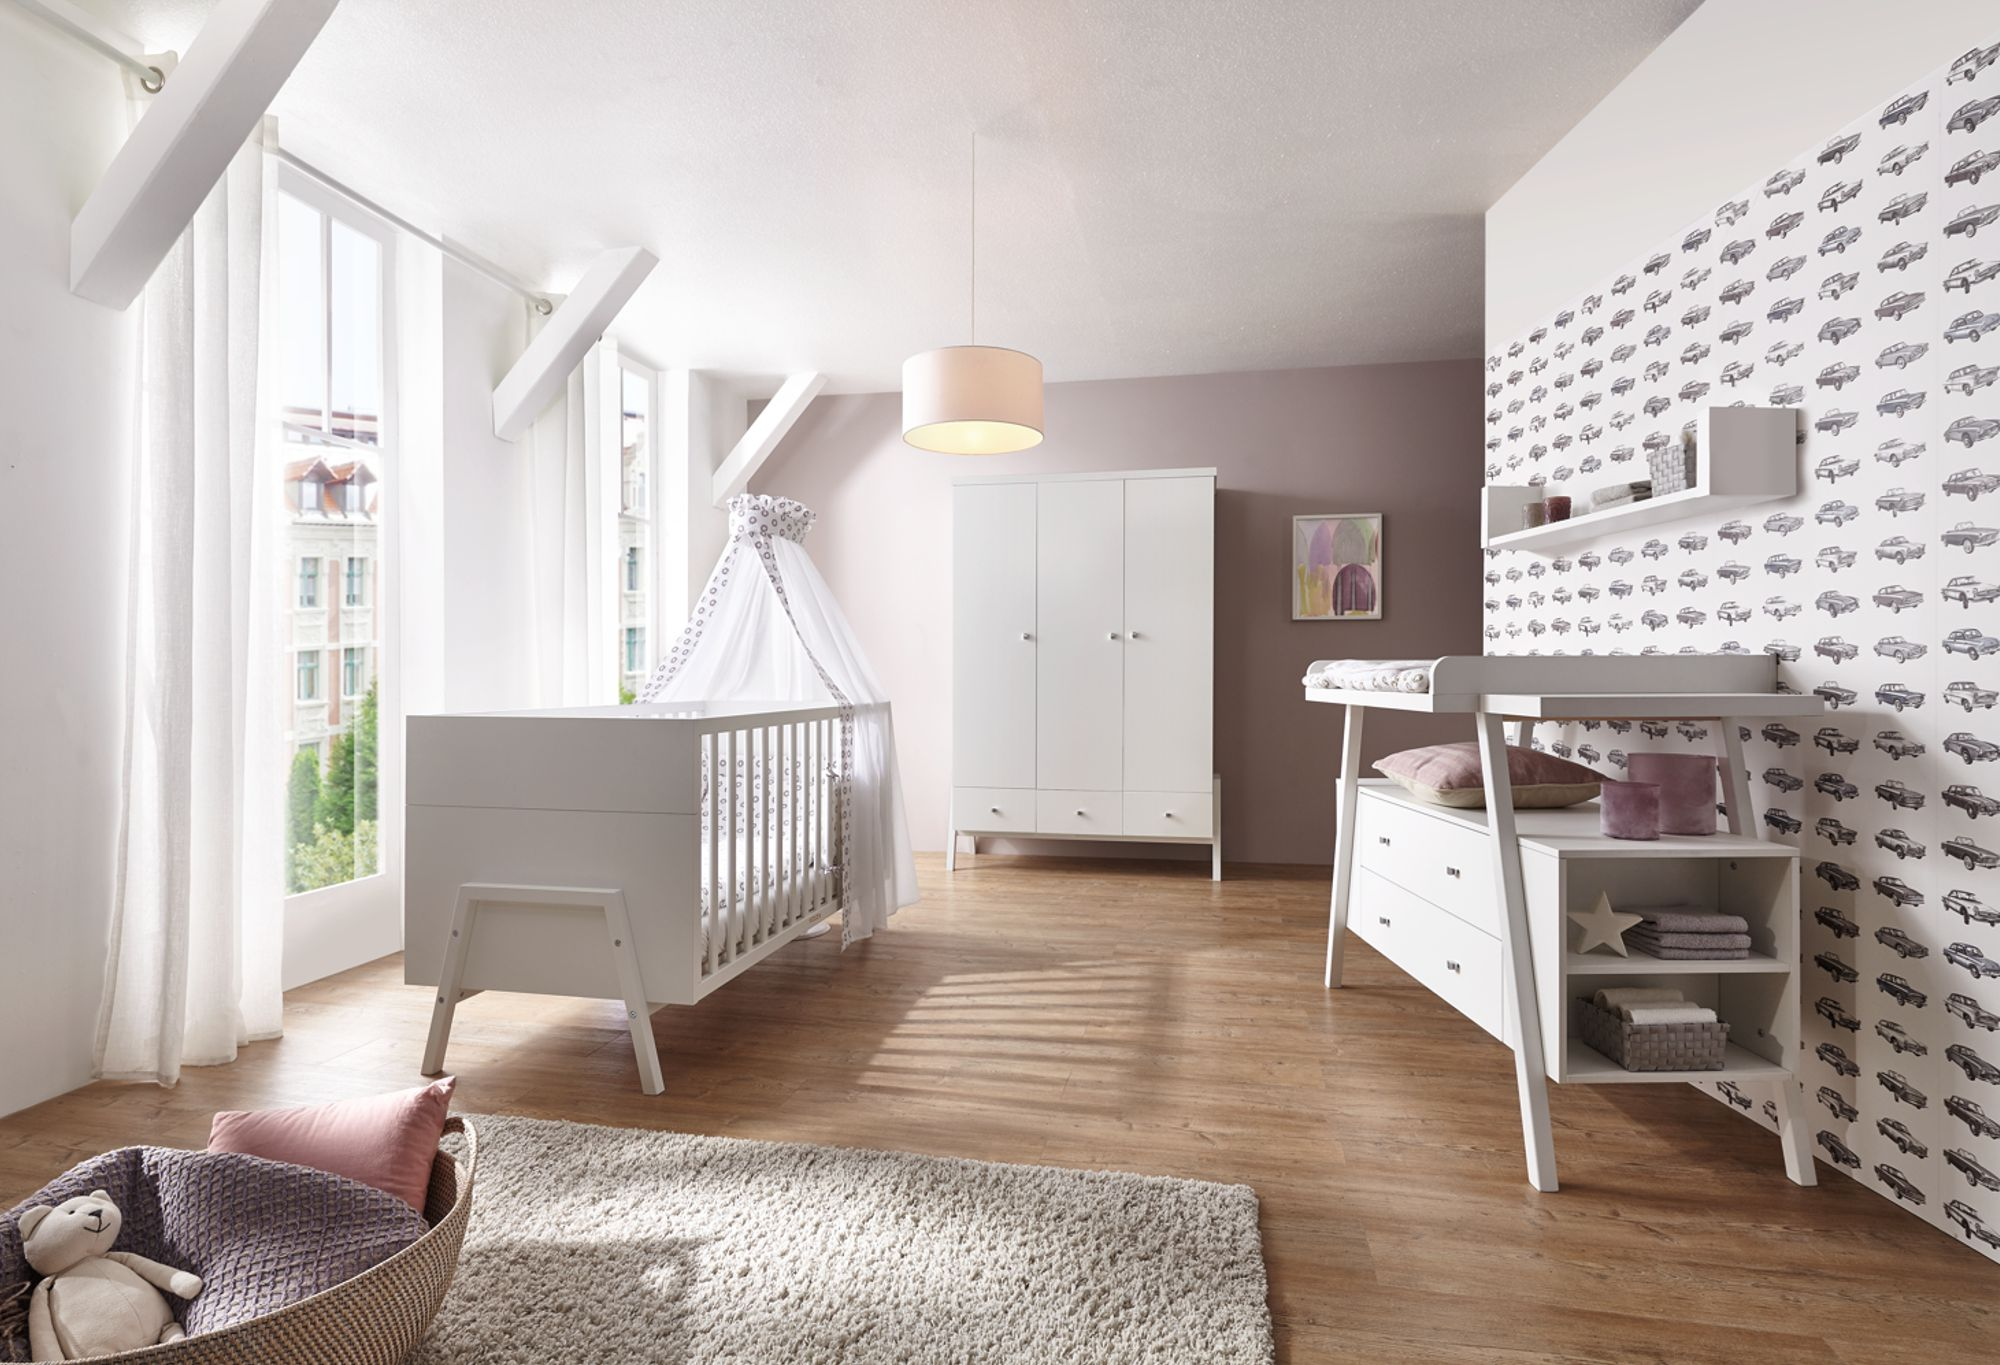 Soft Schrank Kinderzimmer Holly White – Schardt Gmbh & Co. Kg